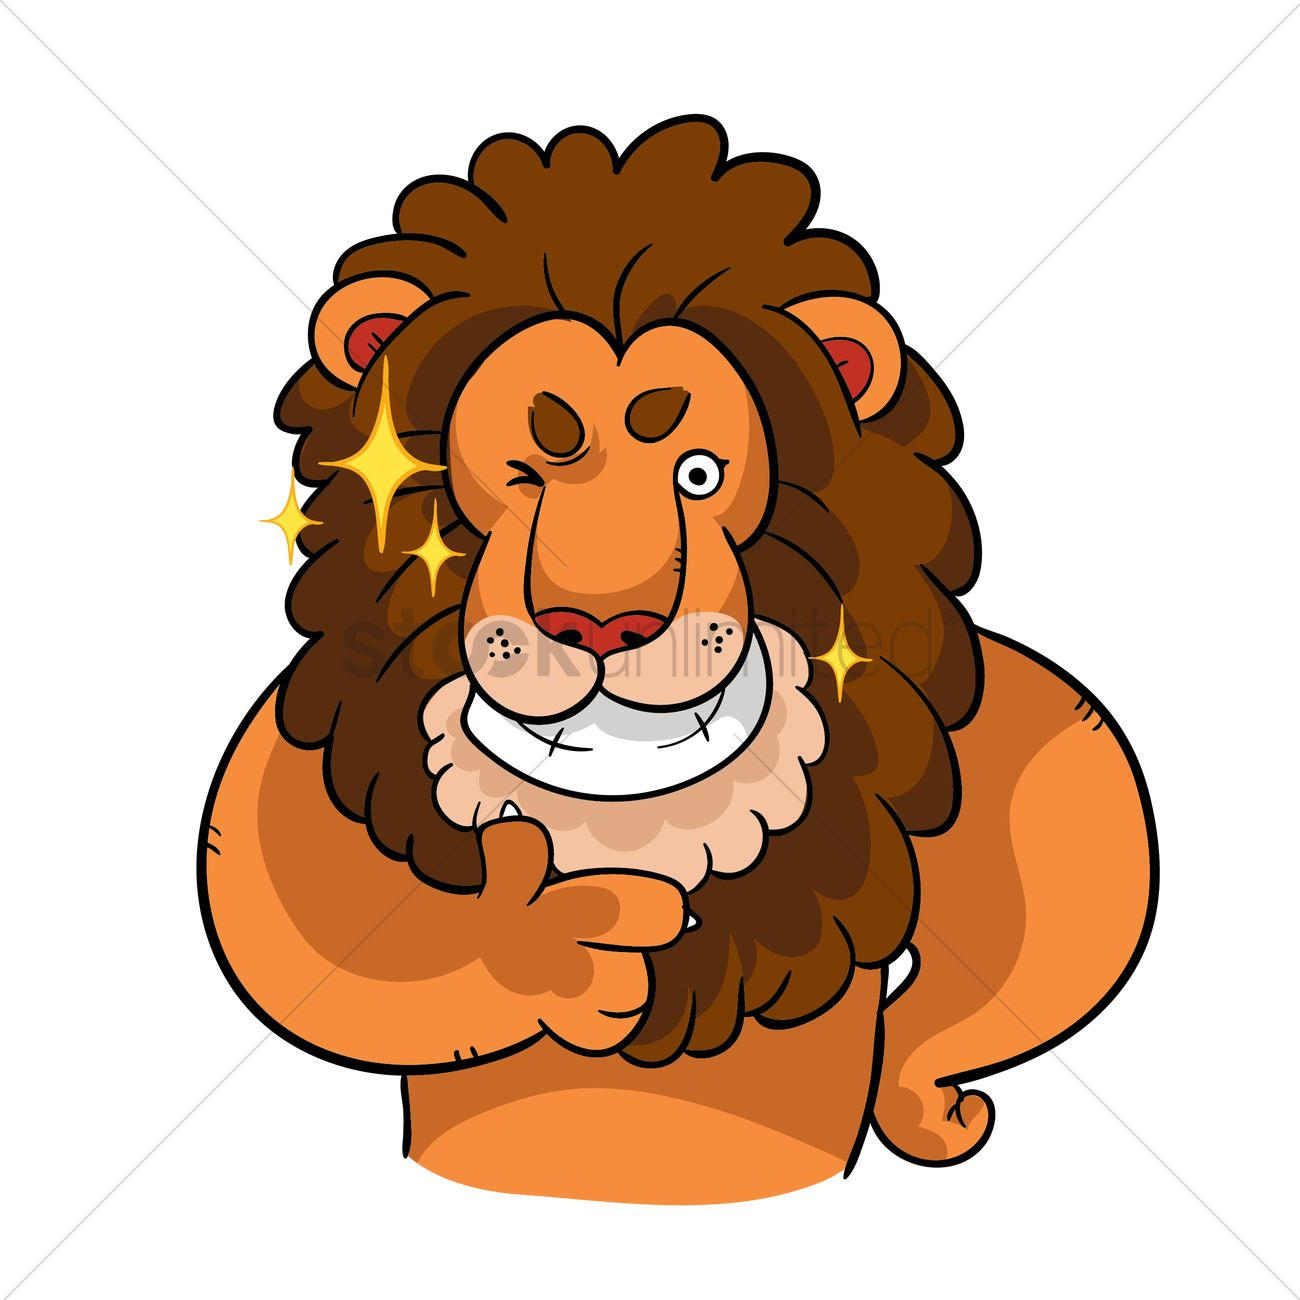 1300x1300 Cartoon Lion With Thumbs Up Gesture Vector Image